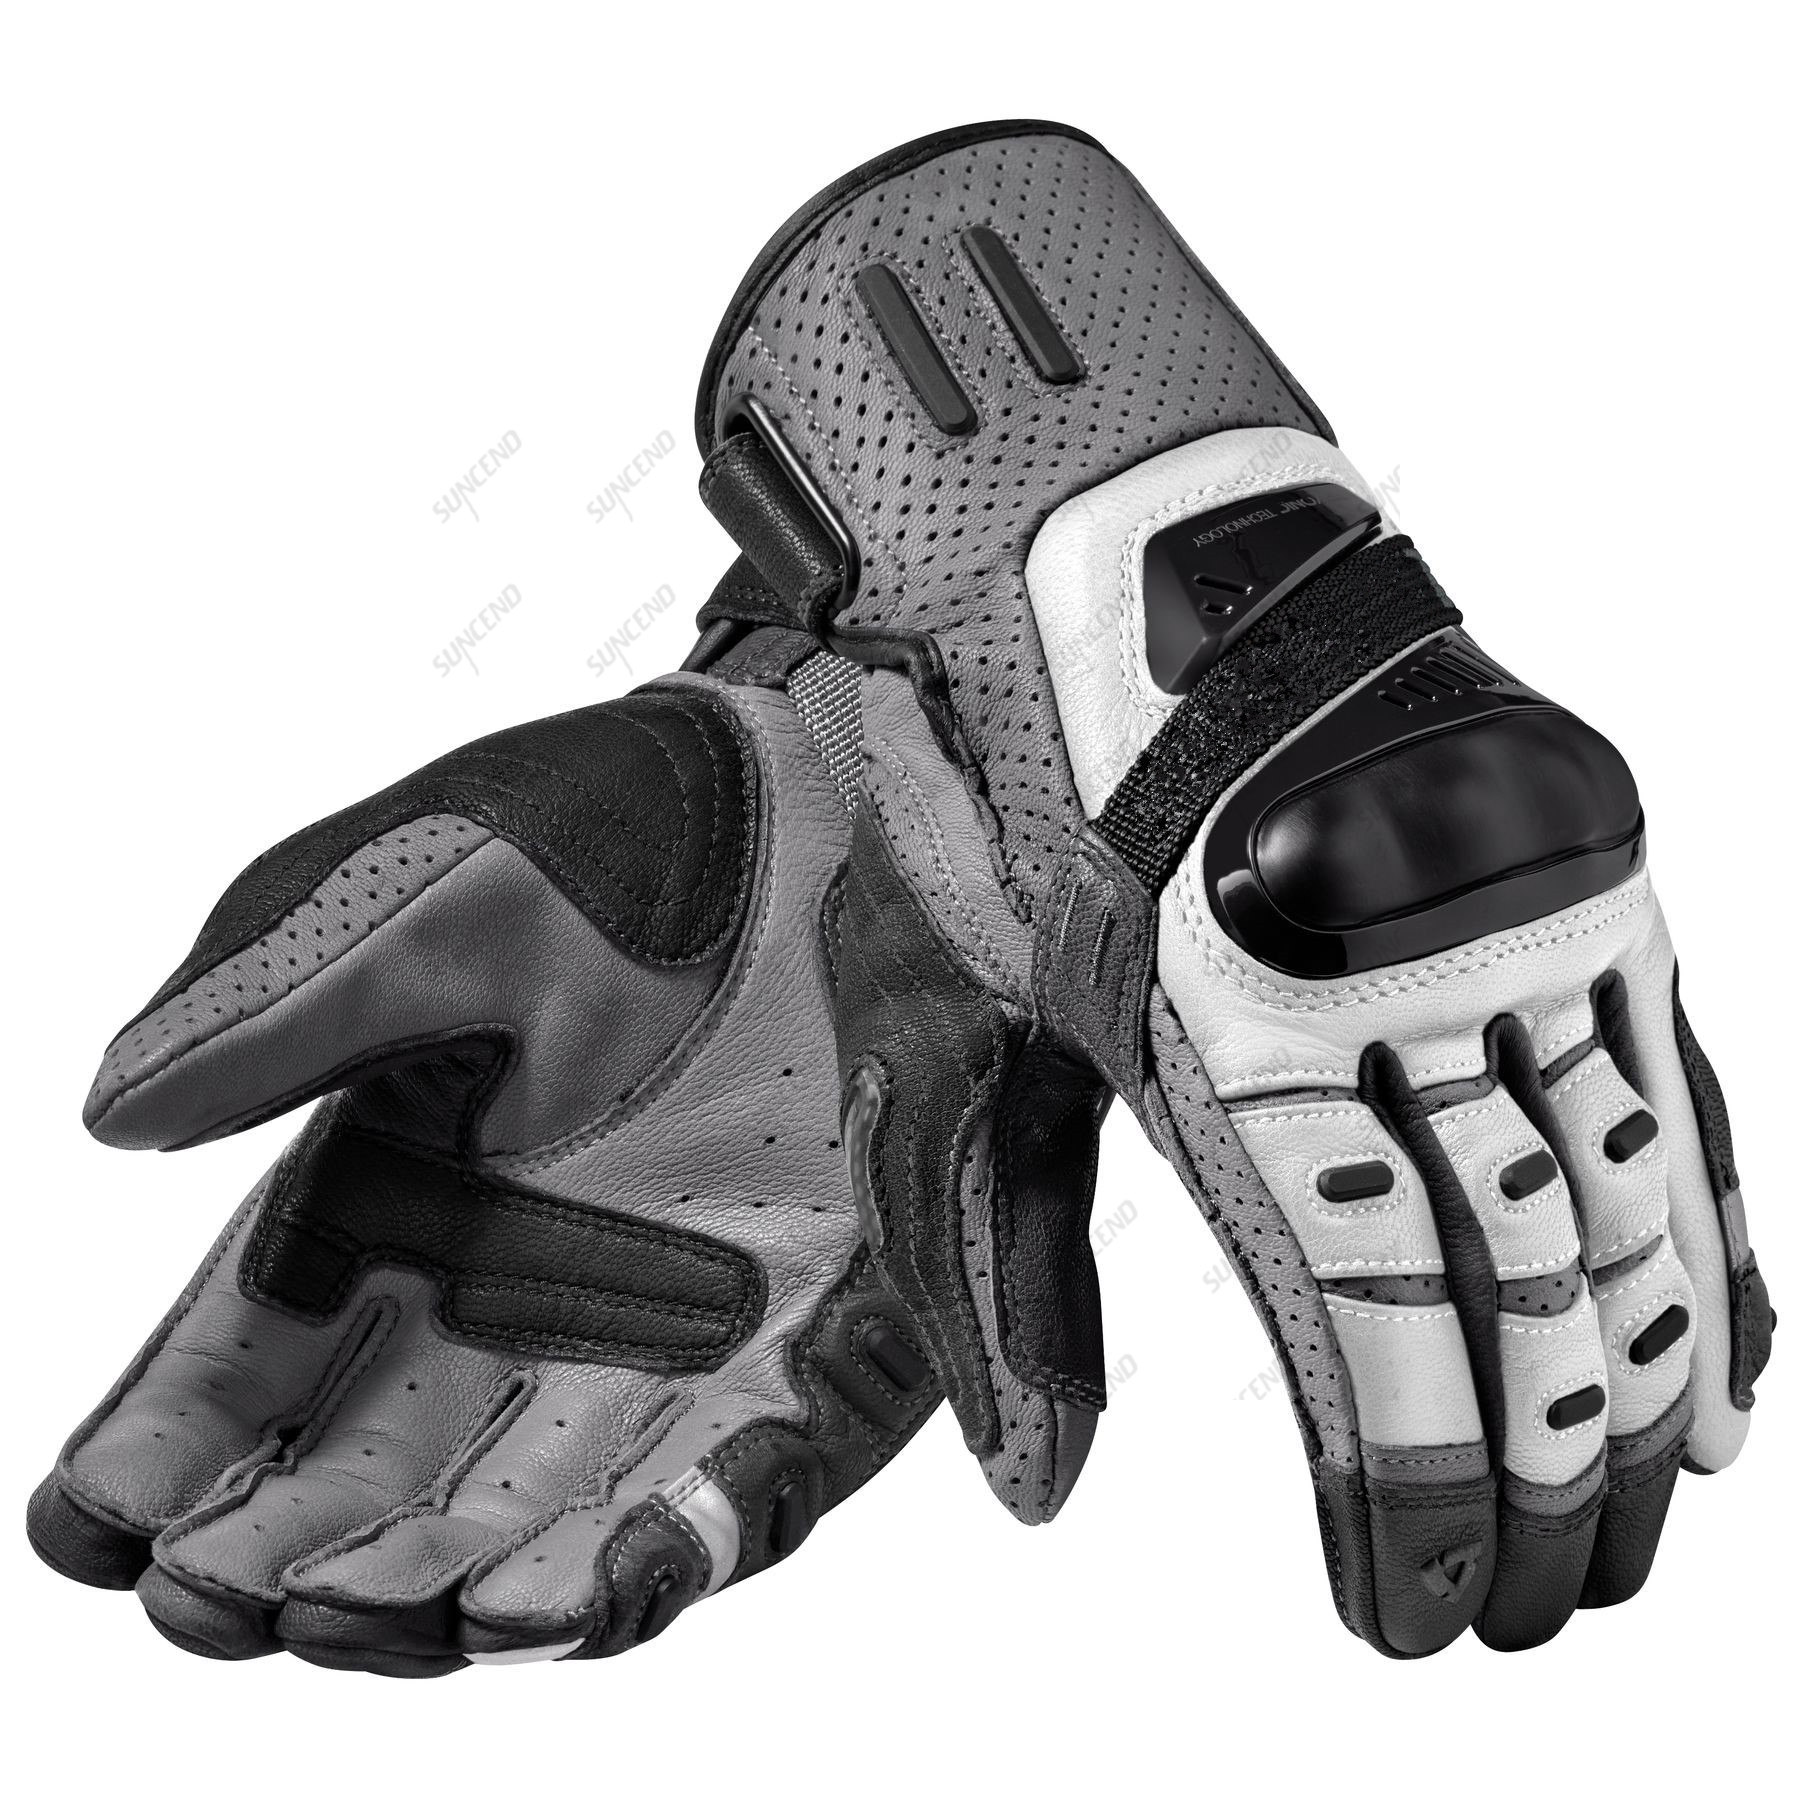 OEM Hand Protection Motorcycle Gloves